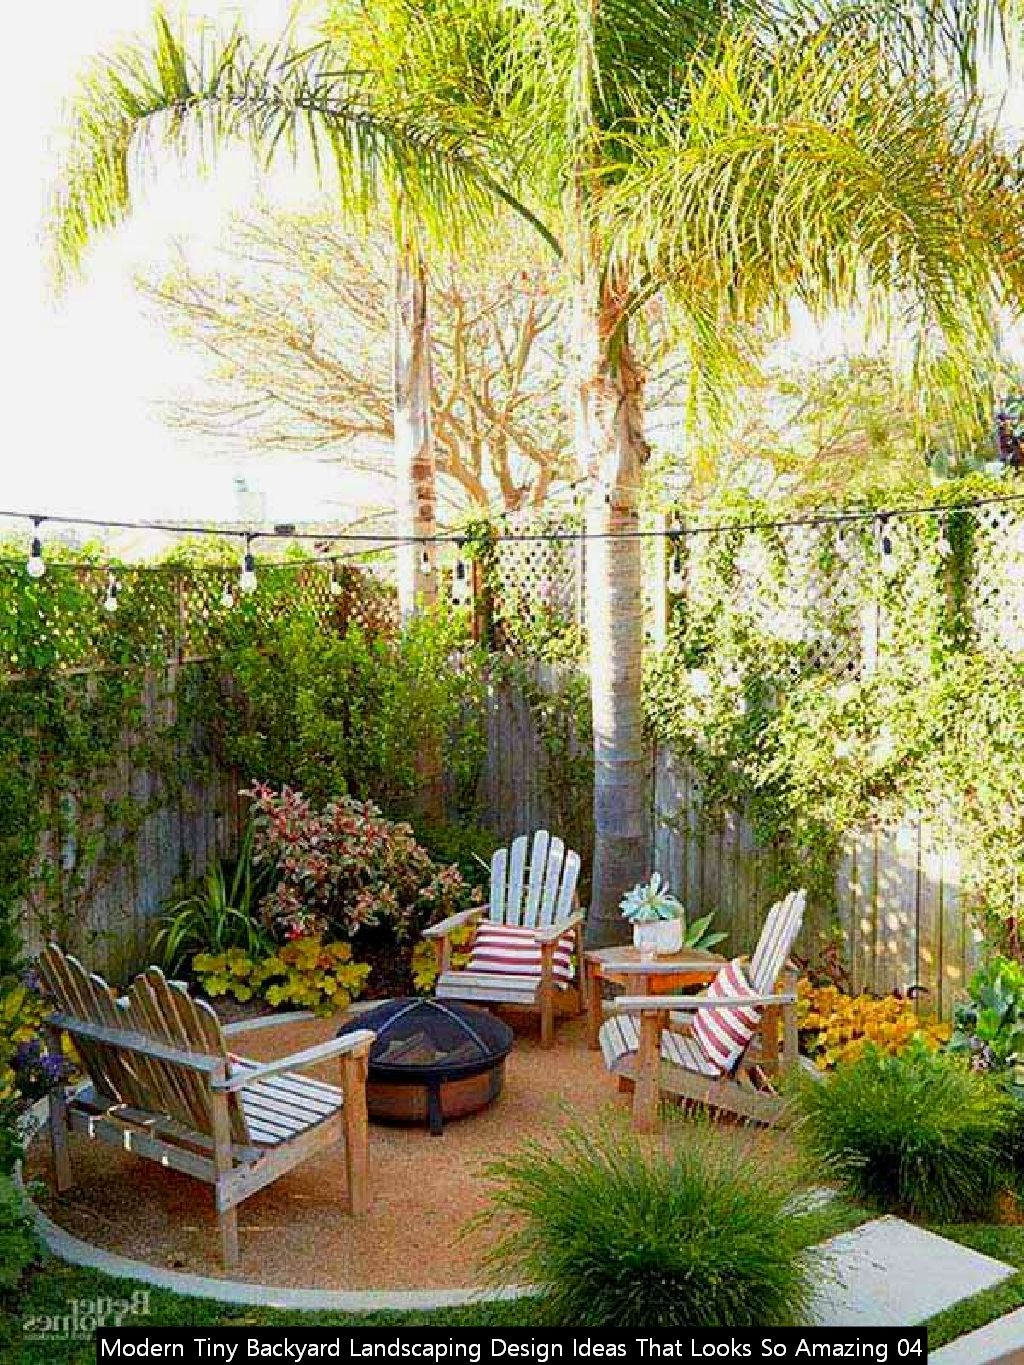 Modern Tiny Backyard Landscaping Design Ideas That Looks So Amazing 04